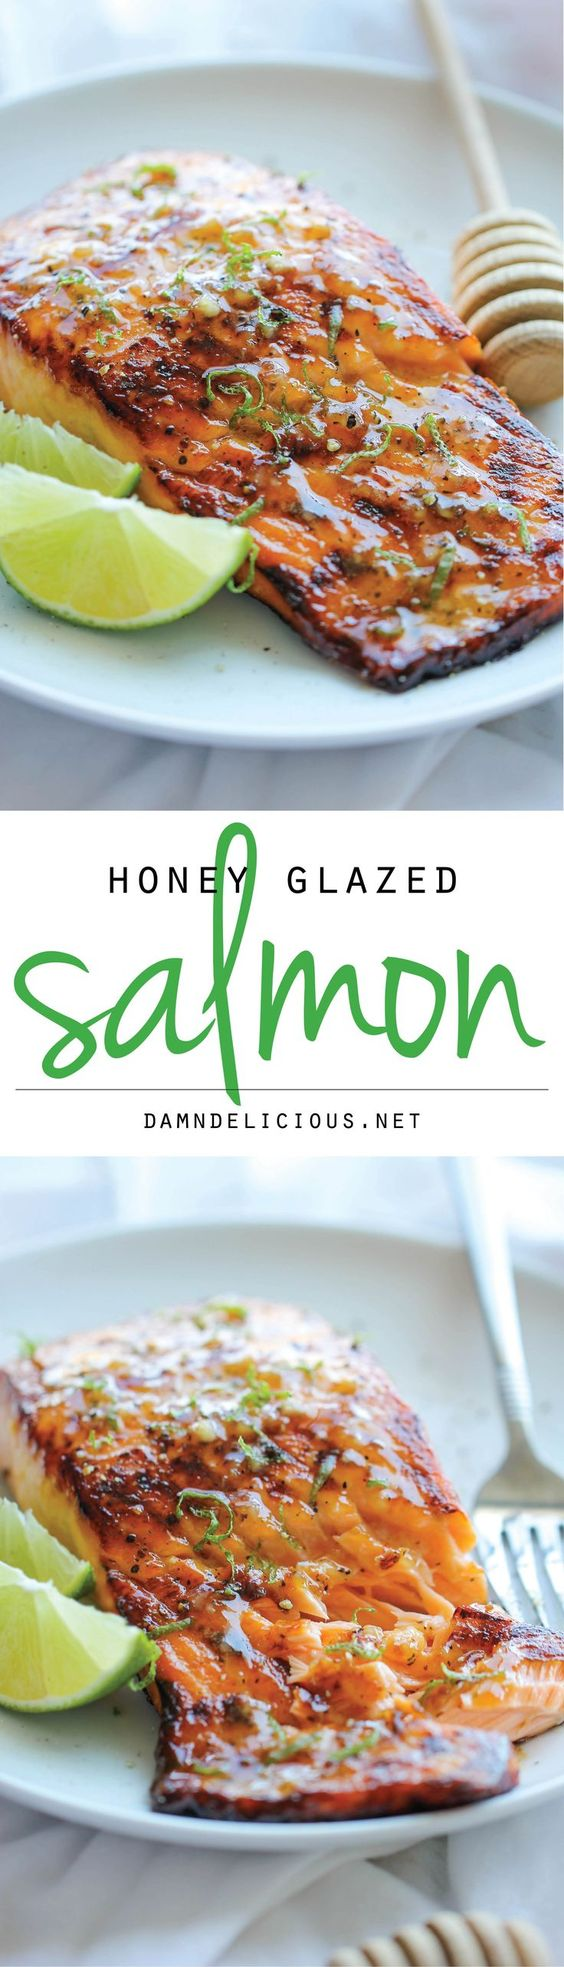 Honey Glazed Salmon Recept Eten Recepten En Zalmrecepten